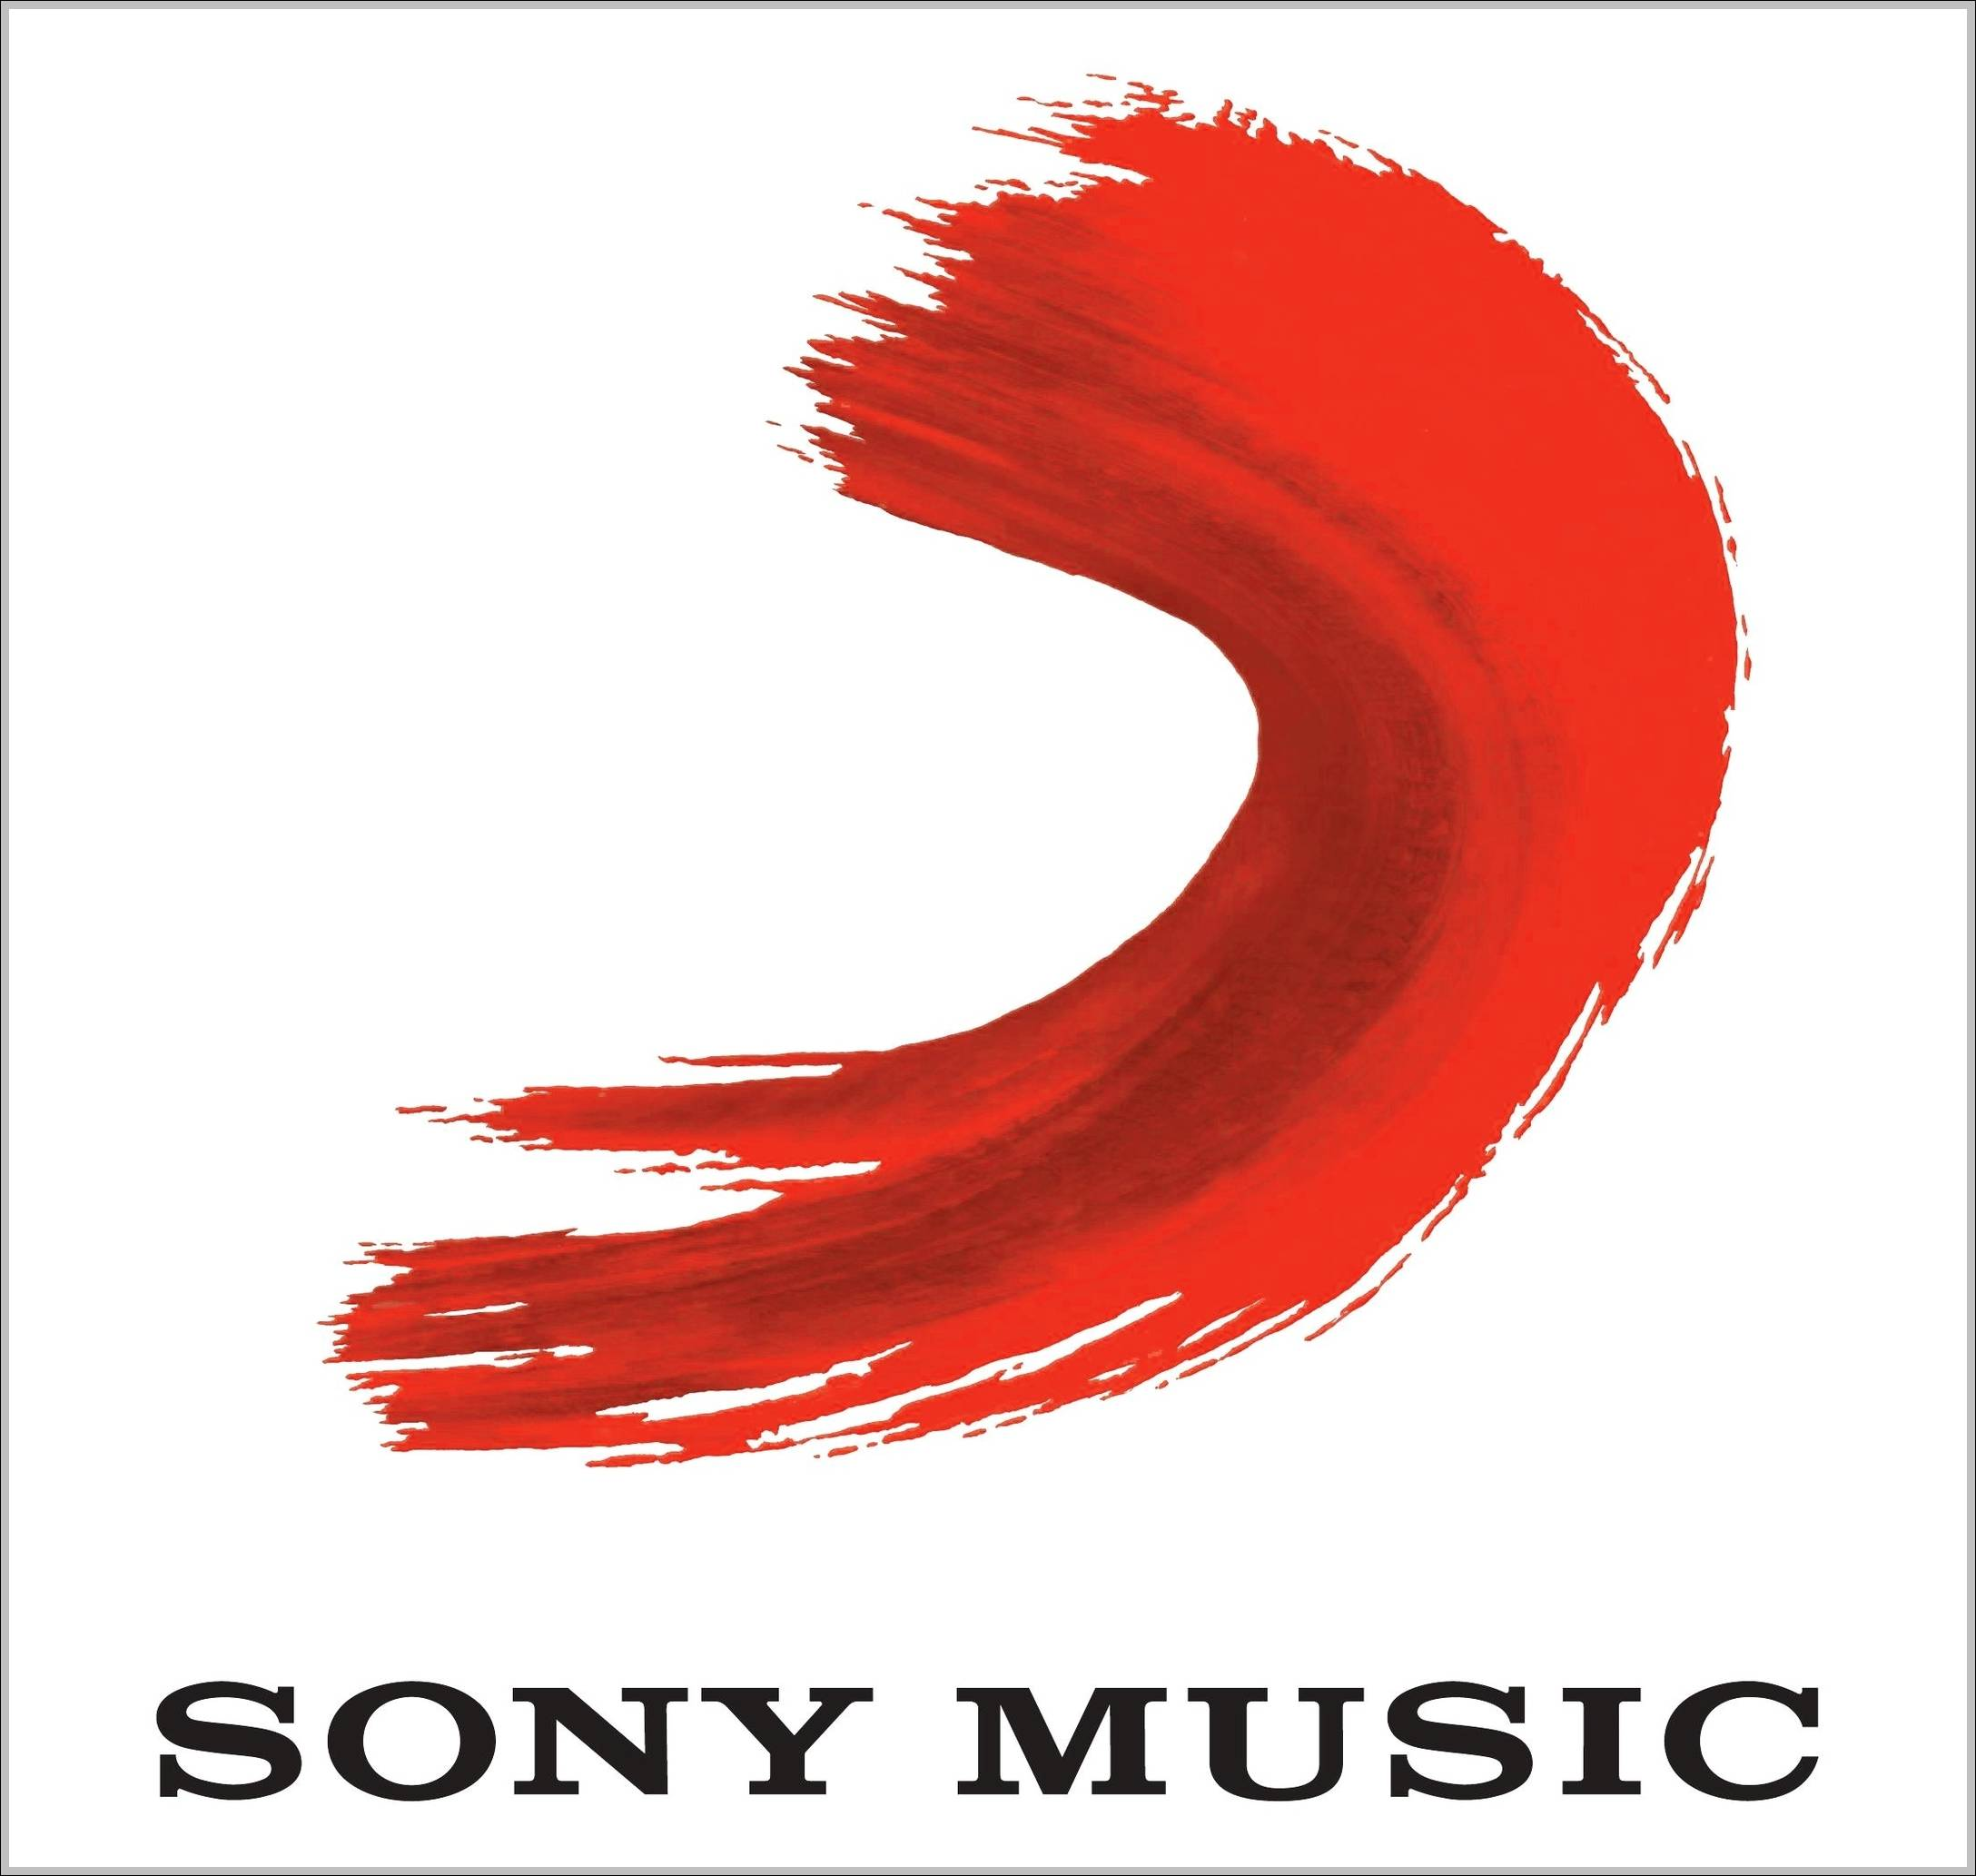 Sony Music sign